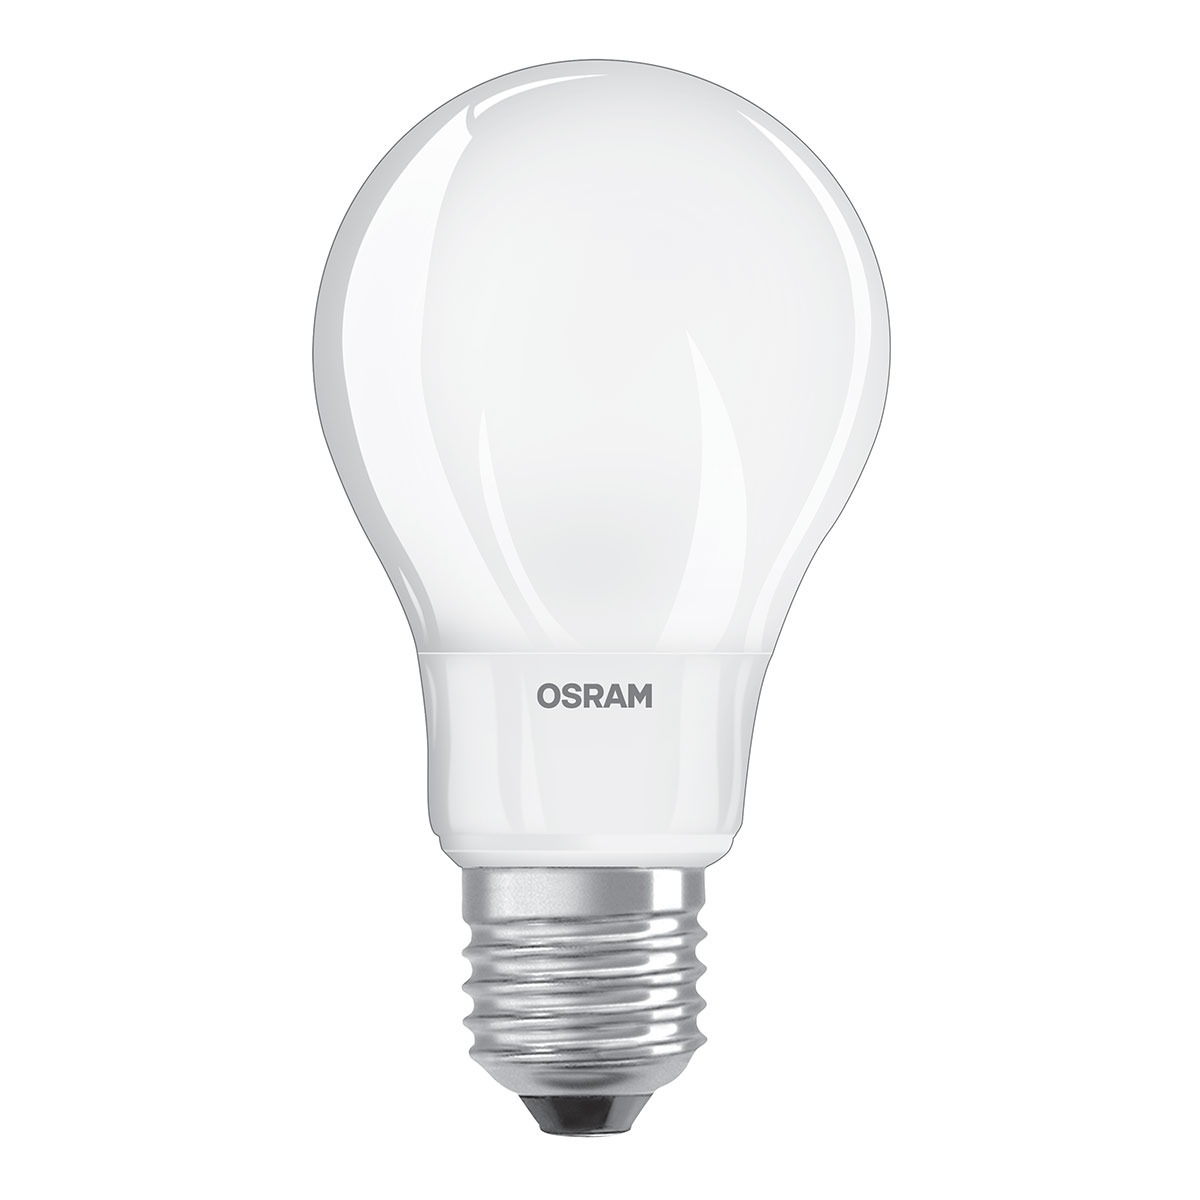 osram ampoule led retrofit standard e27 6w 40w a ampoule led osram sur. Black Bedroom Furniture Sets. Home Design Ideas